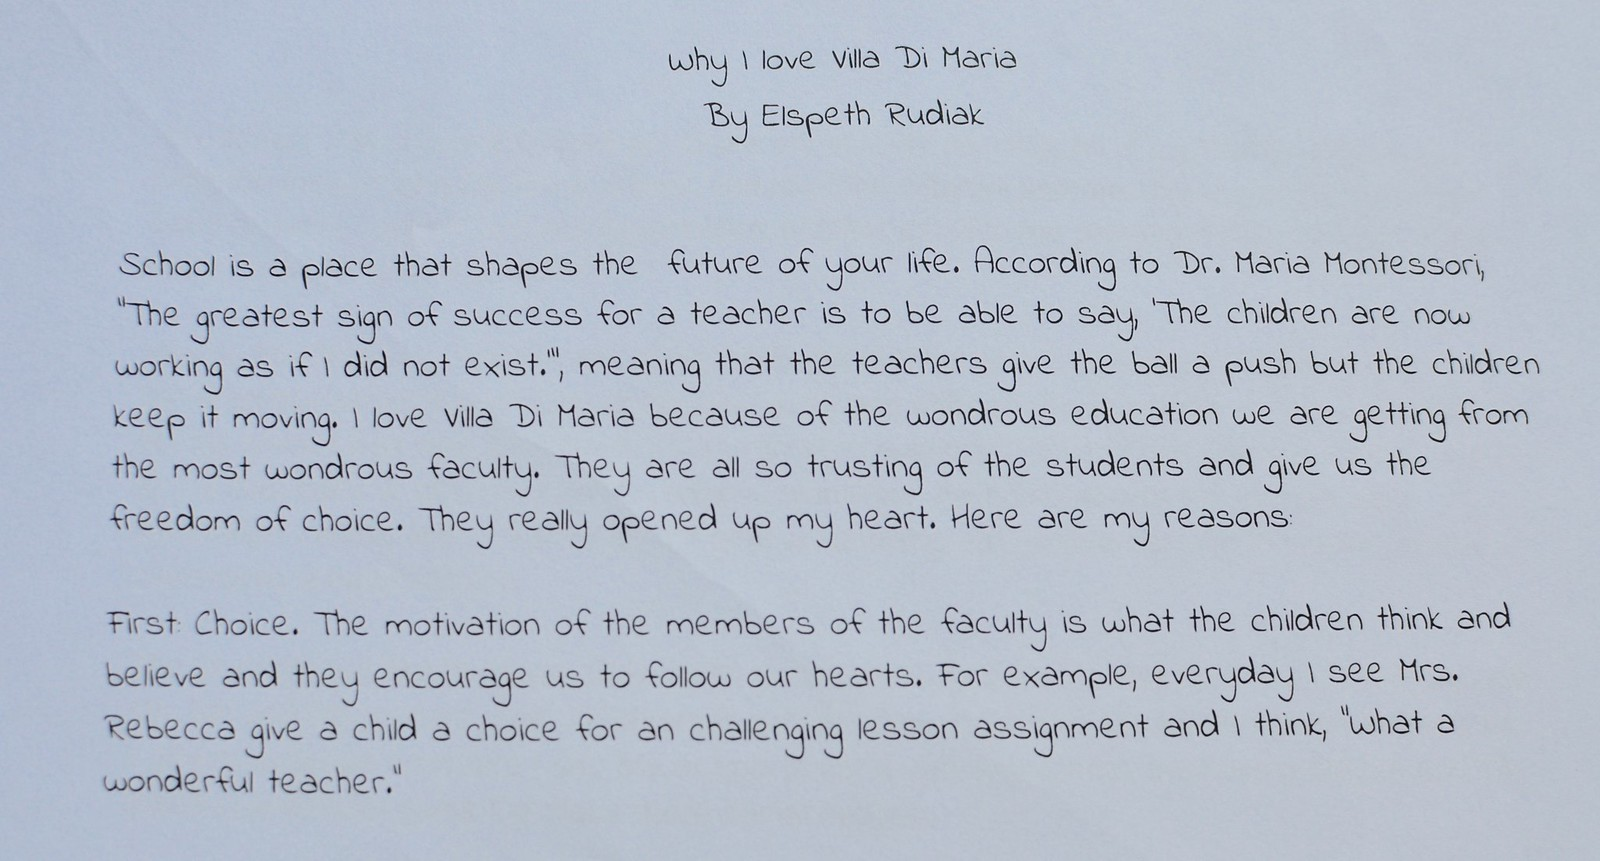 Essay About High School  Elementary Children Who Chose To Participate In This Outpouring Of Love  For Villa Di Maria We Look Forward To Seeing The Published Essay Soon English Argument Essay Topics also English Class Reflection Essay Why I Love My School Elementary Essay Entries  Villa Di Maria  Narrative Essay Thesis